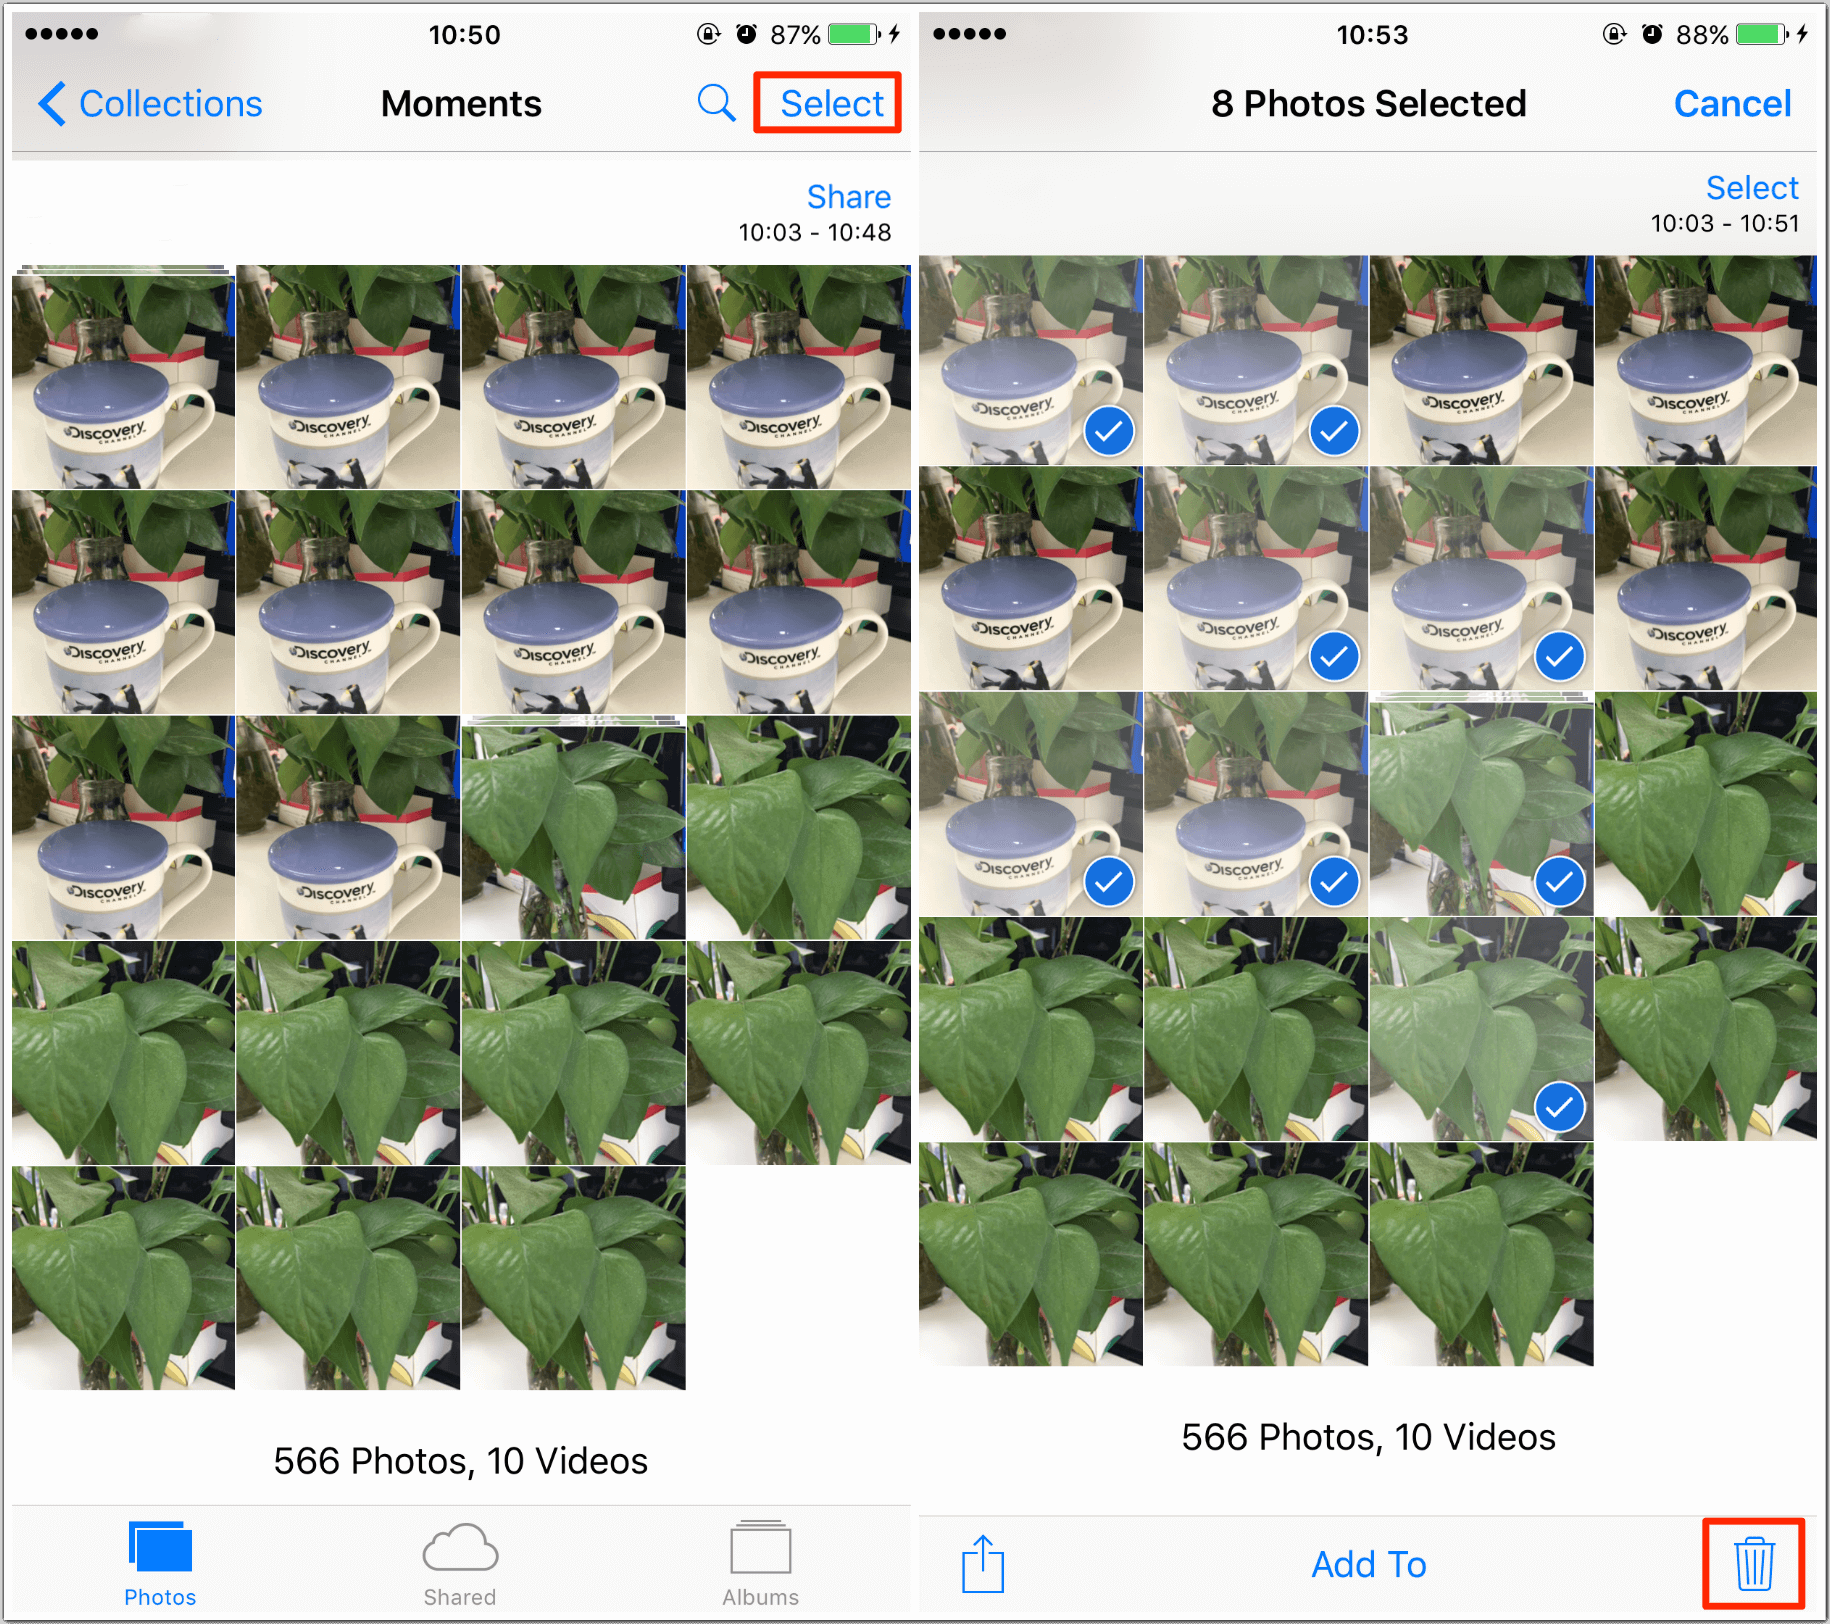 How to Delete Duplicate Photos on iPhone Manually